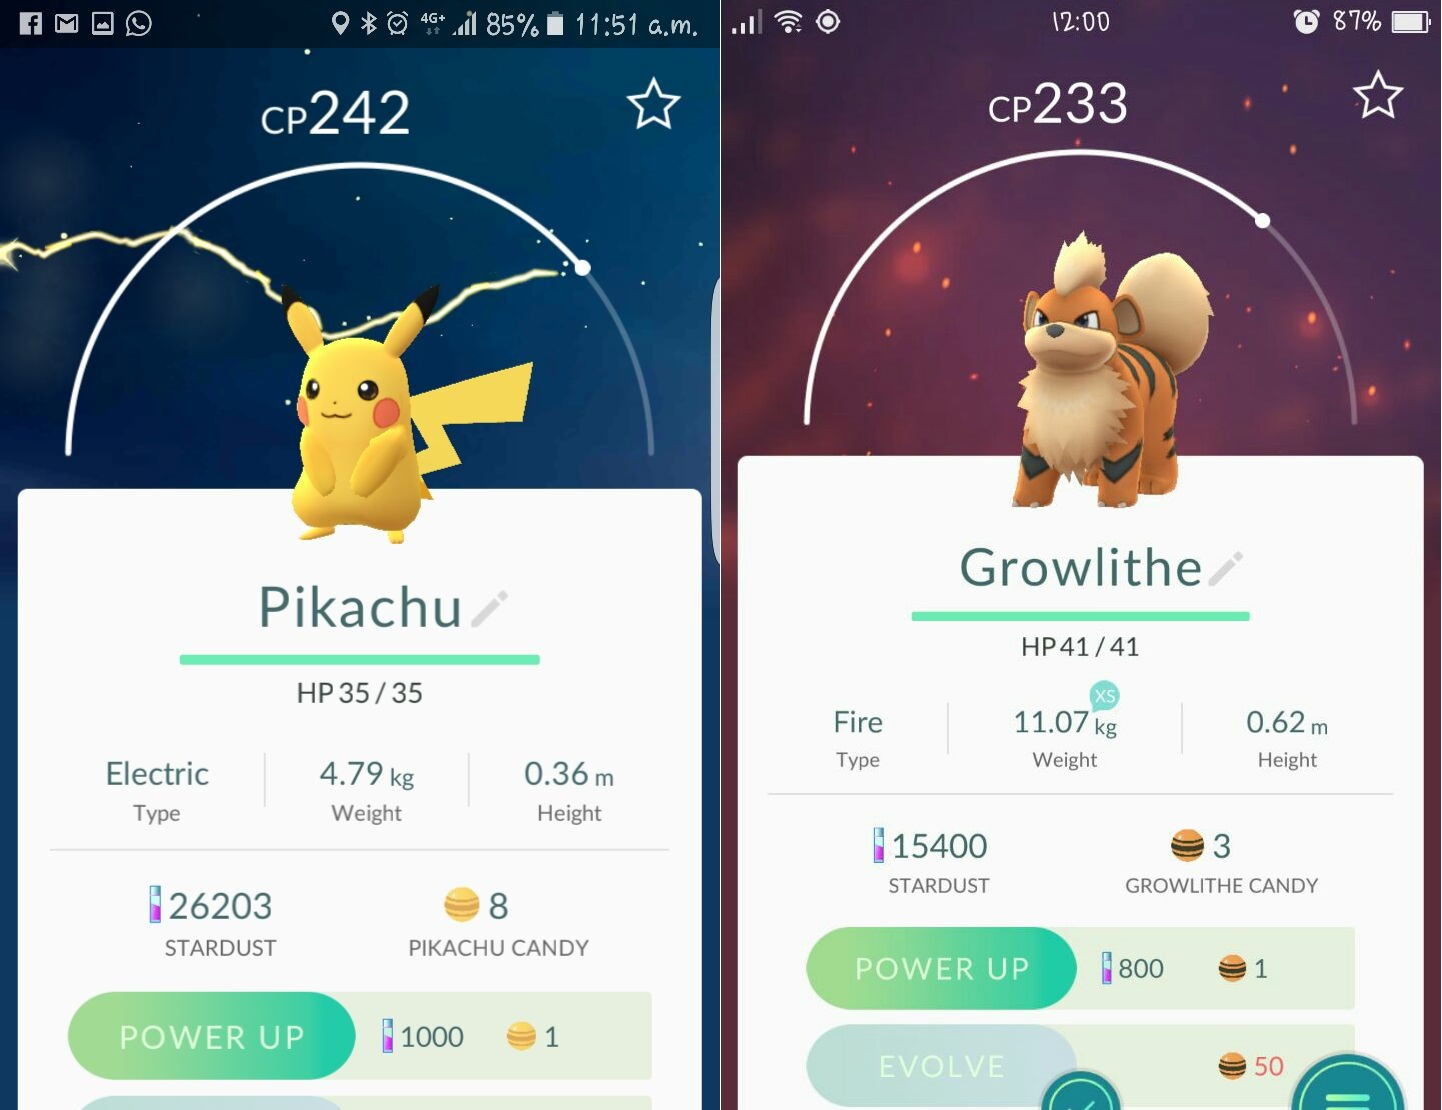 Pokemon Go Pikachu & Growlithe